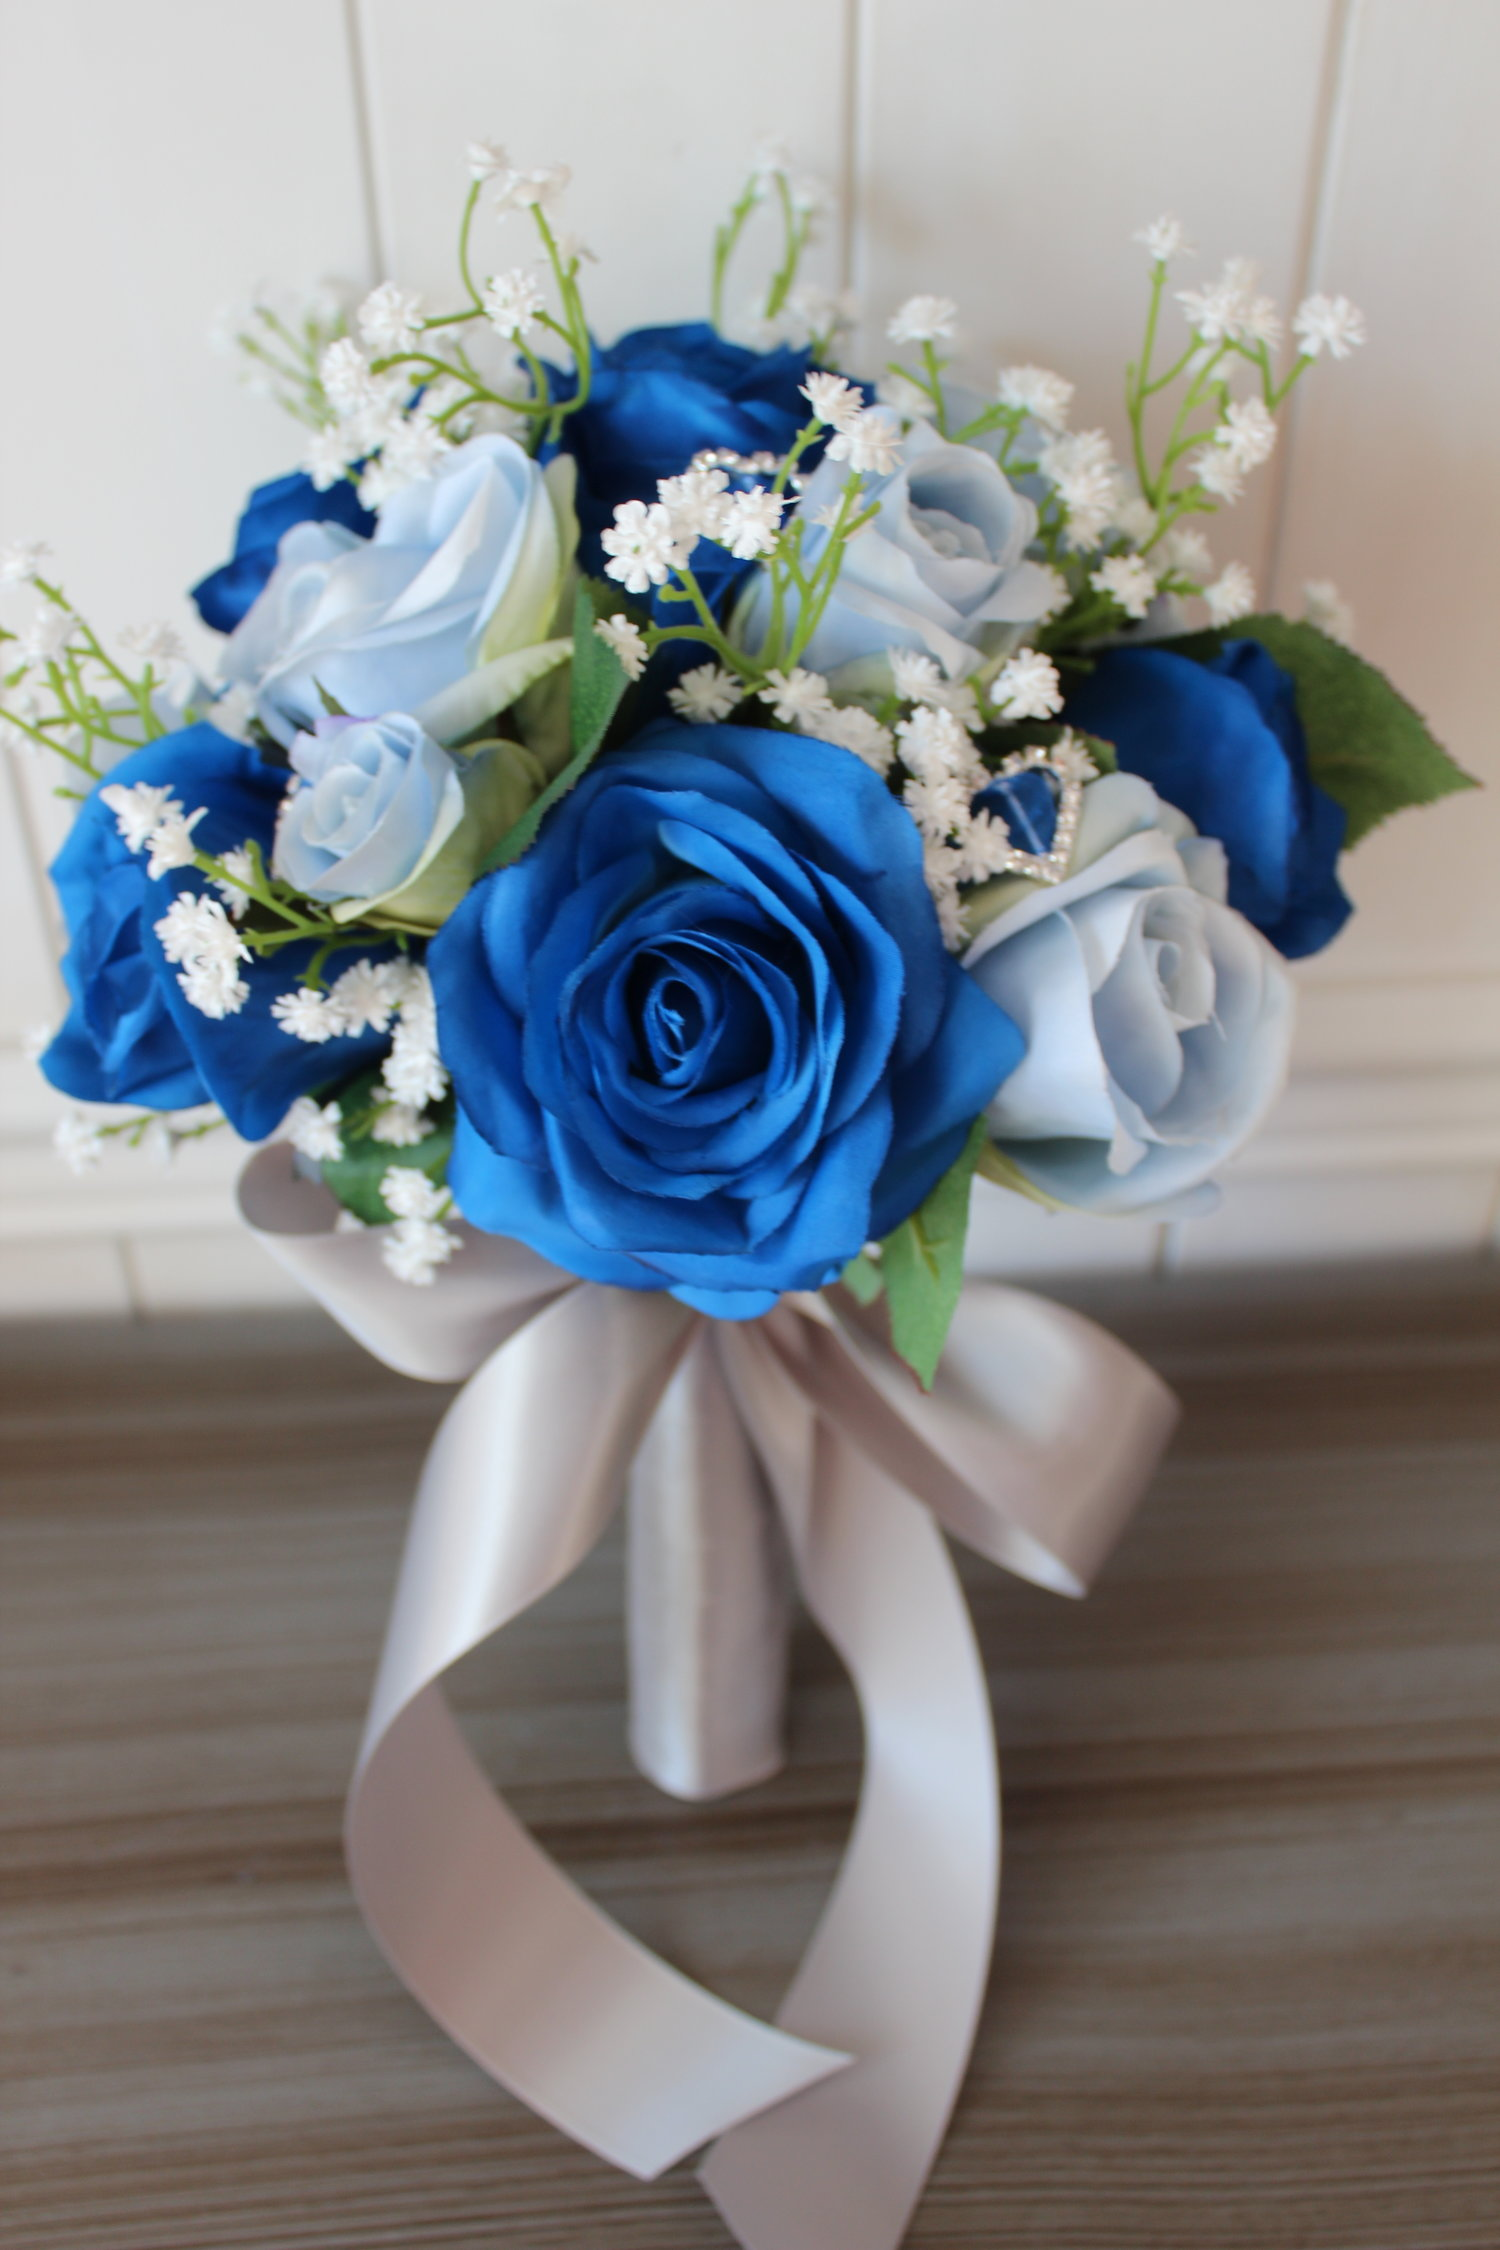 royal blue, light blue and white silk wedding flowers — silk